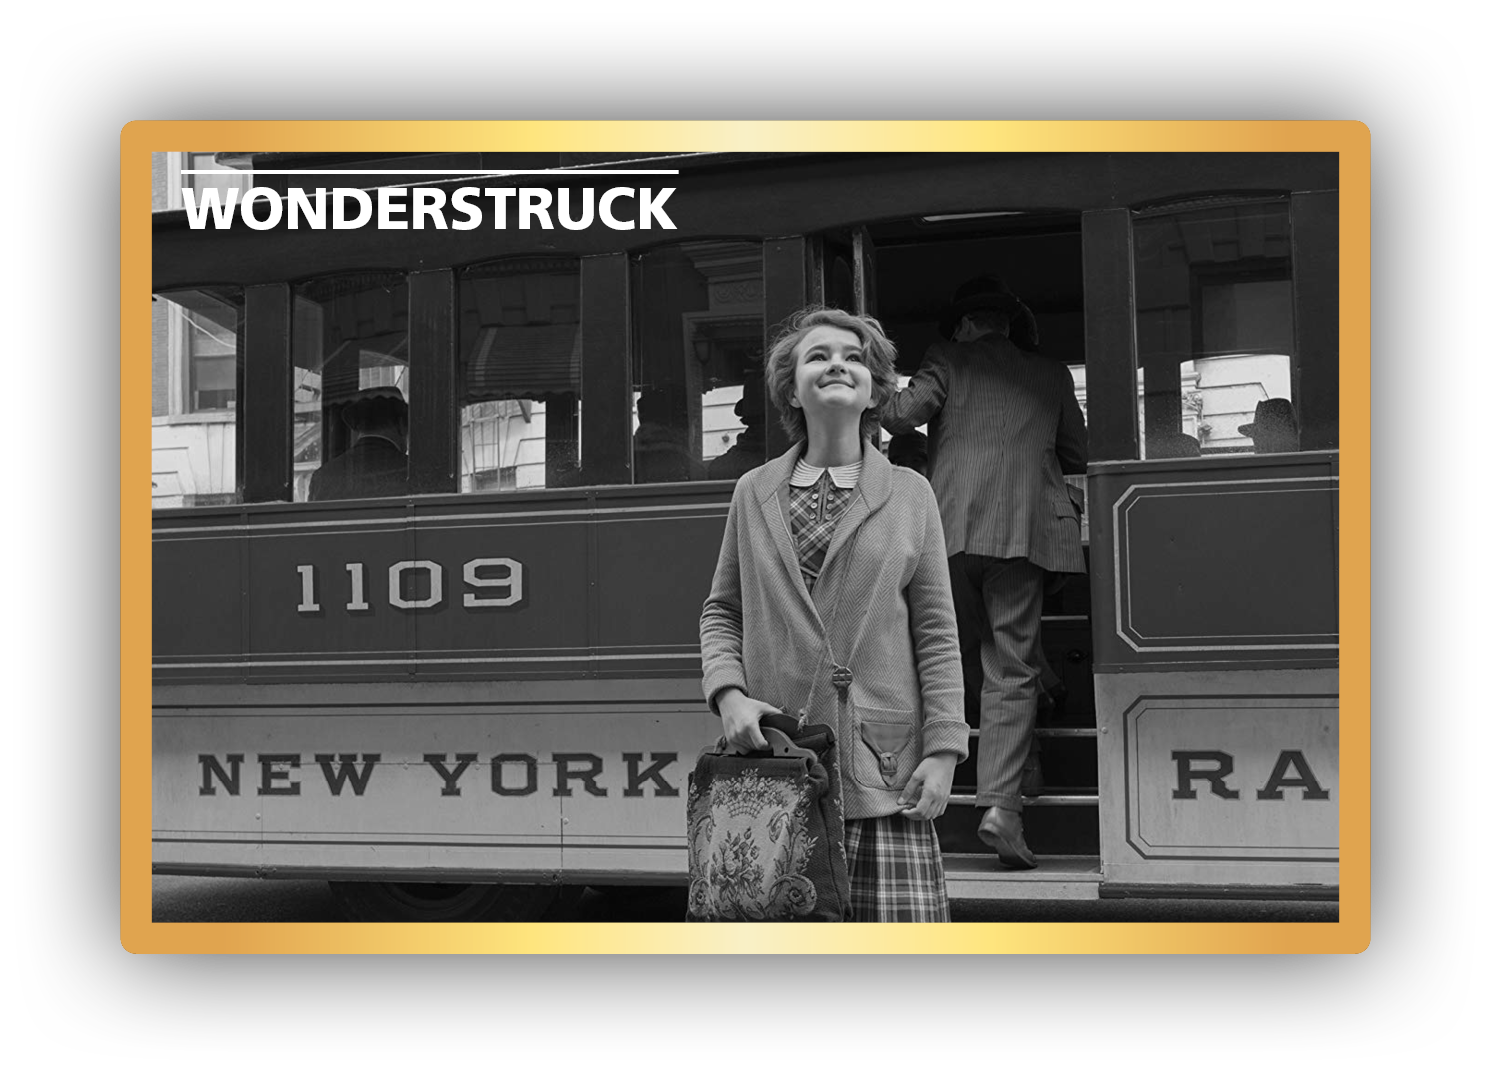 Långfilm 23 november kl 18:30 - Wonderstruck